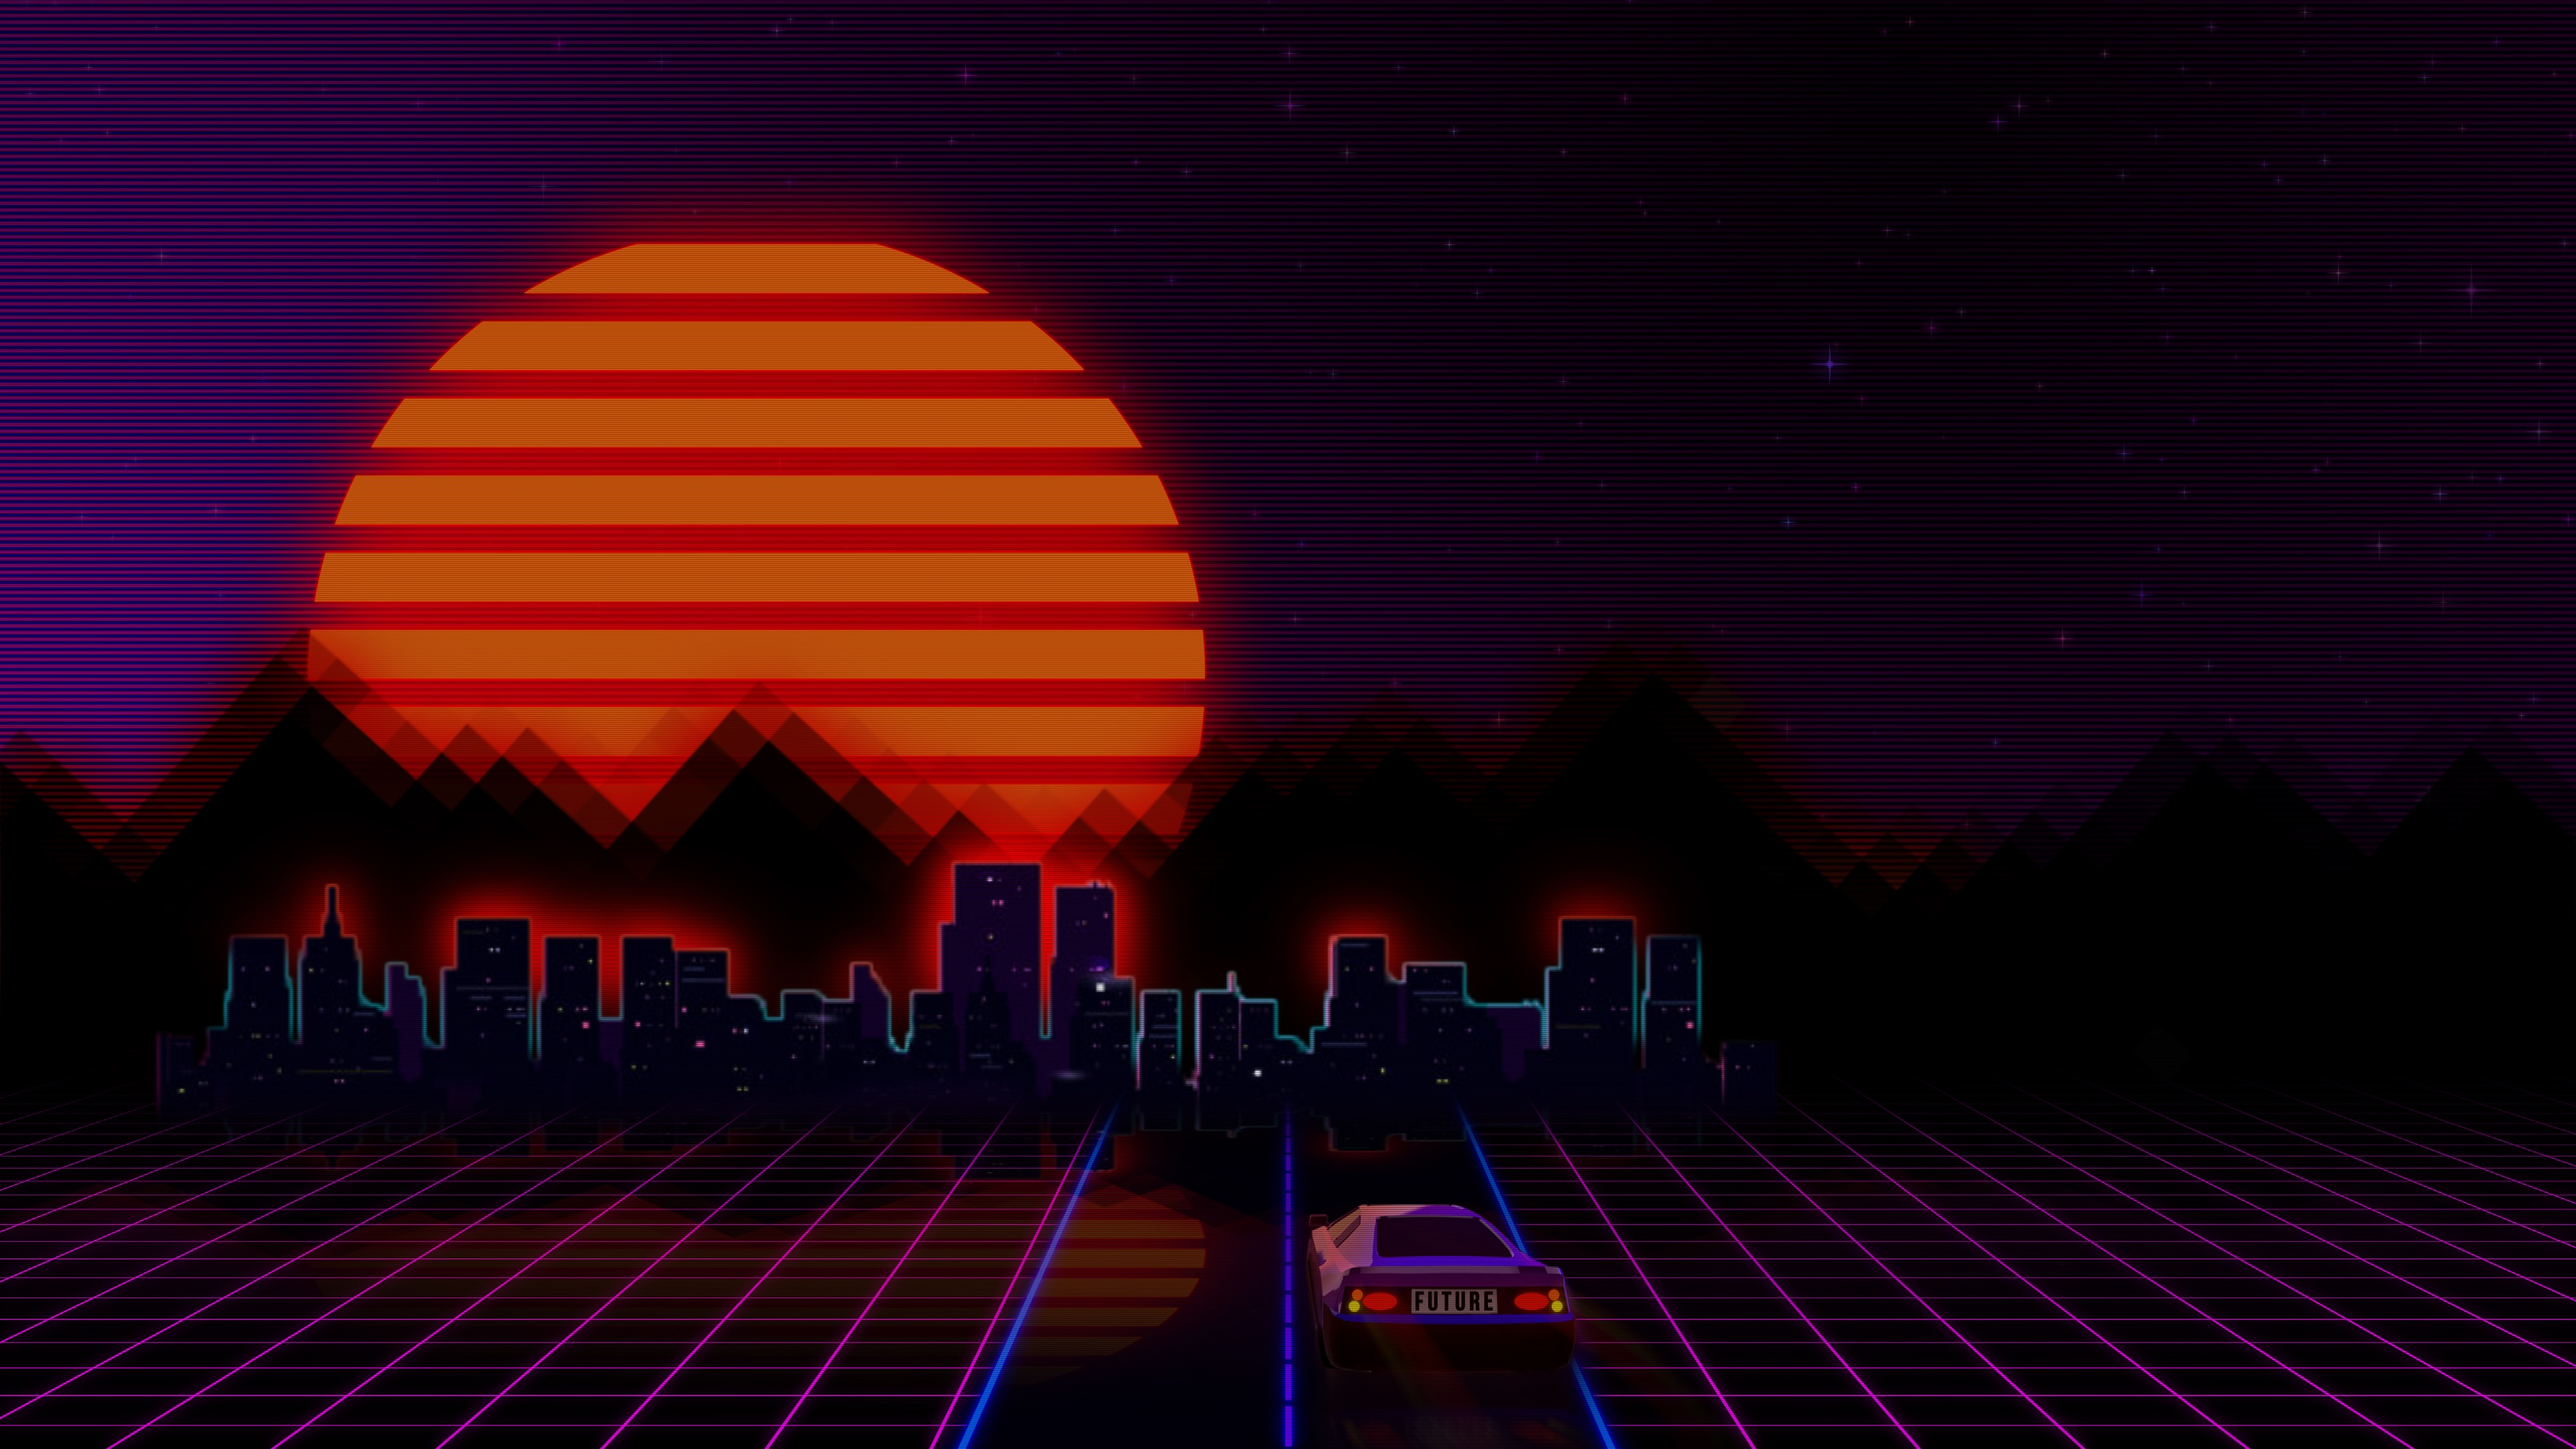 80s Car Wallpaper Retrowave City Artistic Car Hd Artist 4k Wallpapers